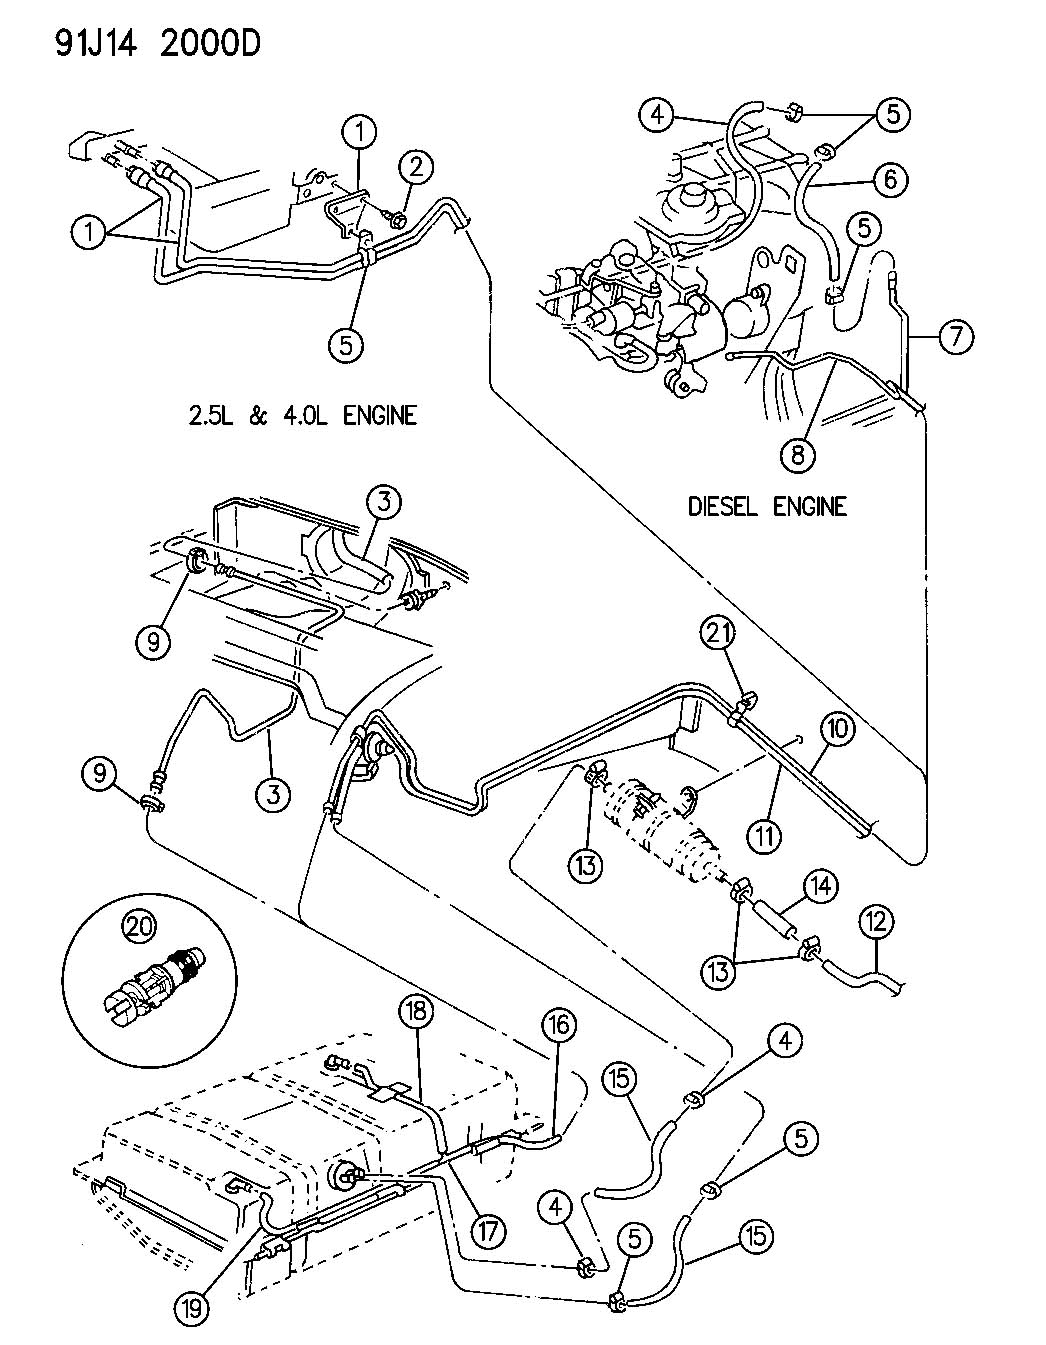 Service Manual How To Unblock Fuel Line Inside Jeep